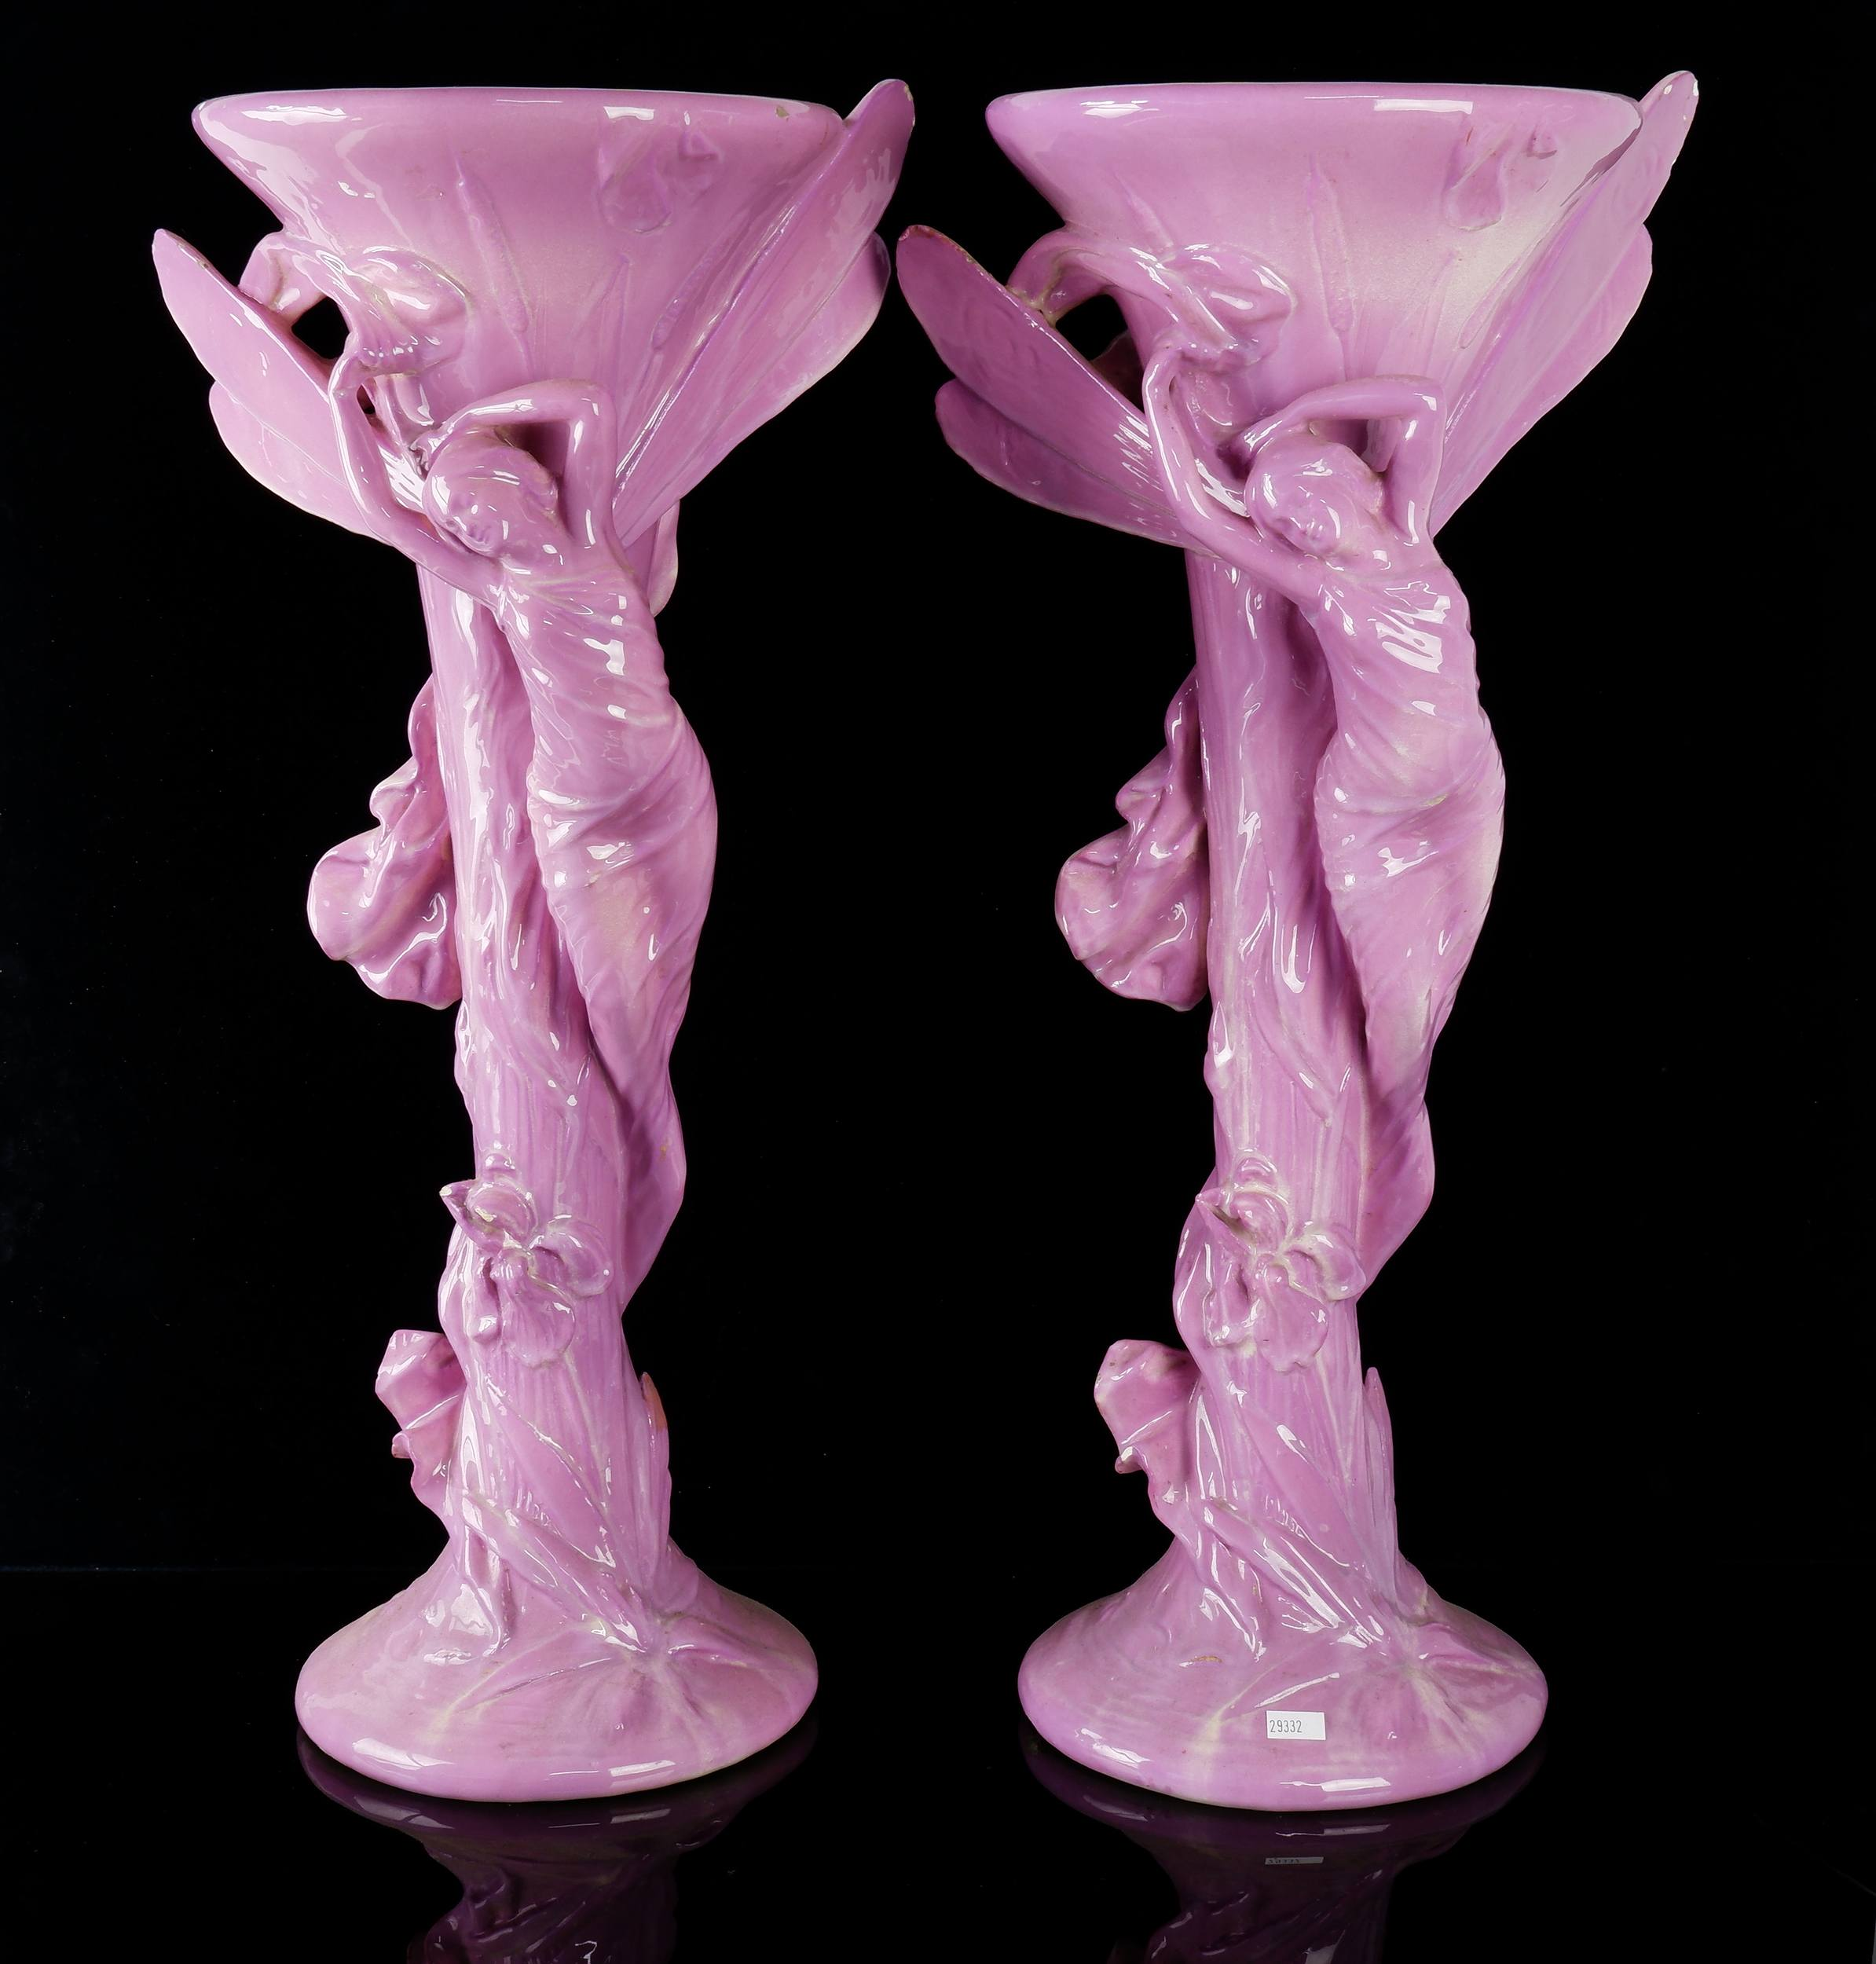 'Impressive Pair of French Art Nouveau Majolica Glazed Figural Dragonfly Nymph Vases Circa 1900, Probably by Massier'